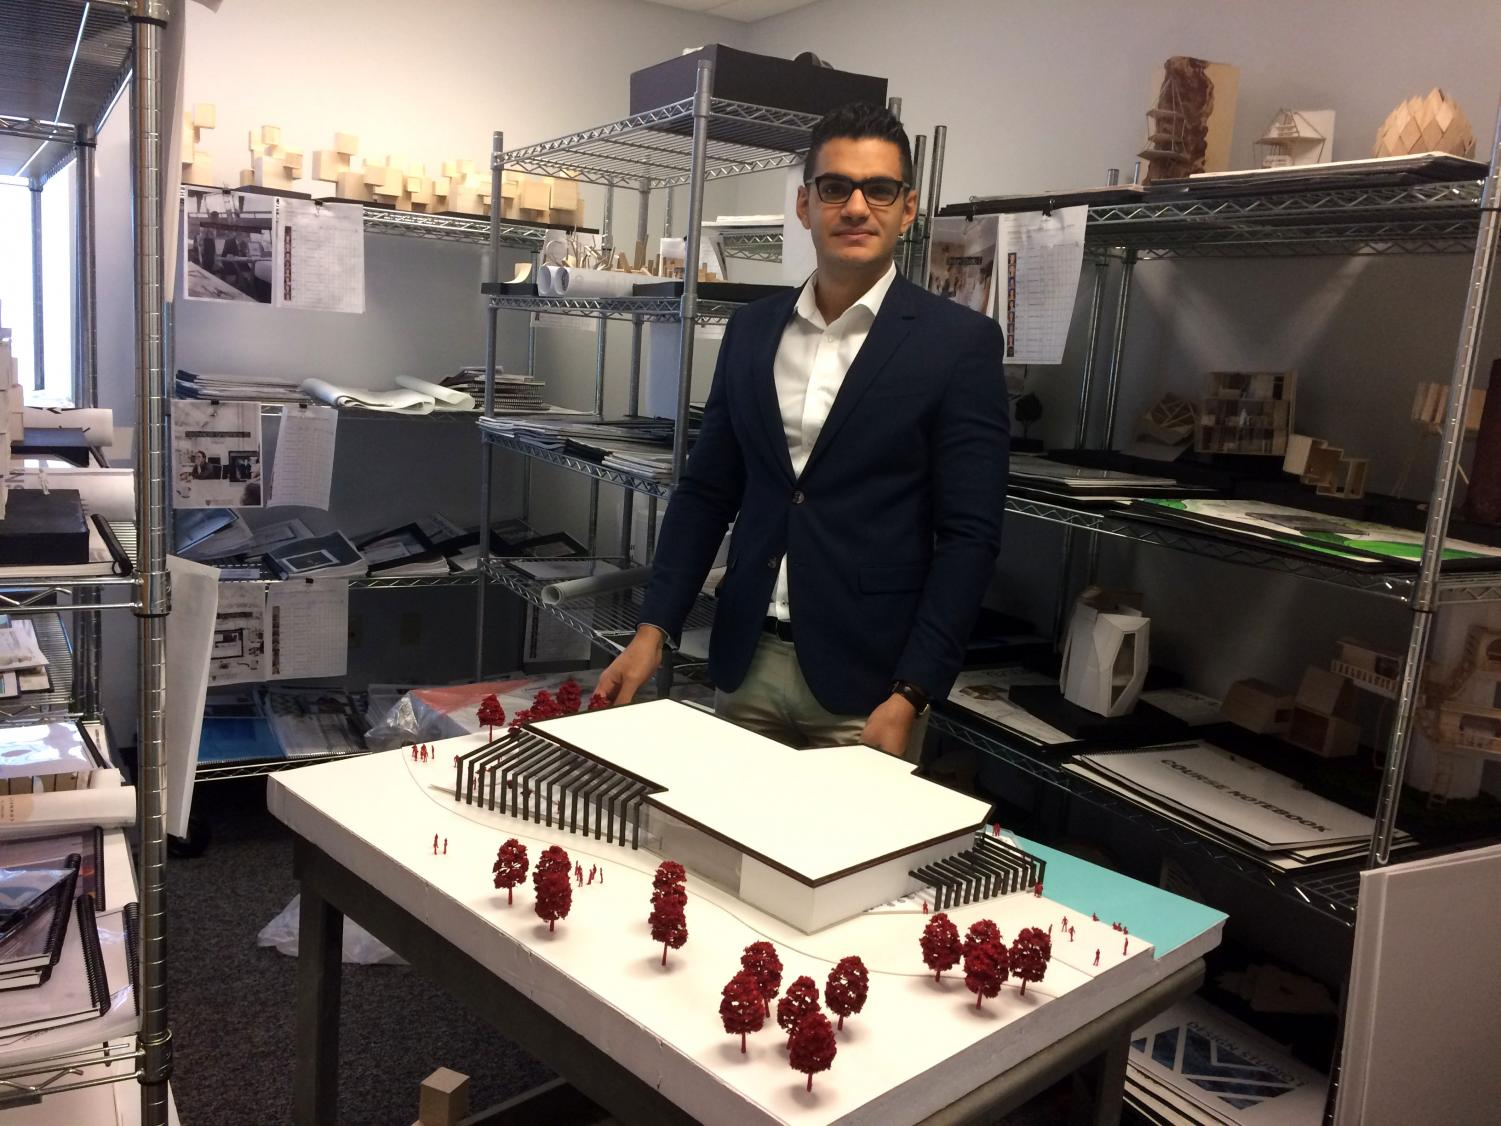 Keyman Asefi, who was raised in southeast Asia, is an instructor of Interior Architecture and Design at Mercyhurst.